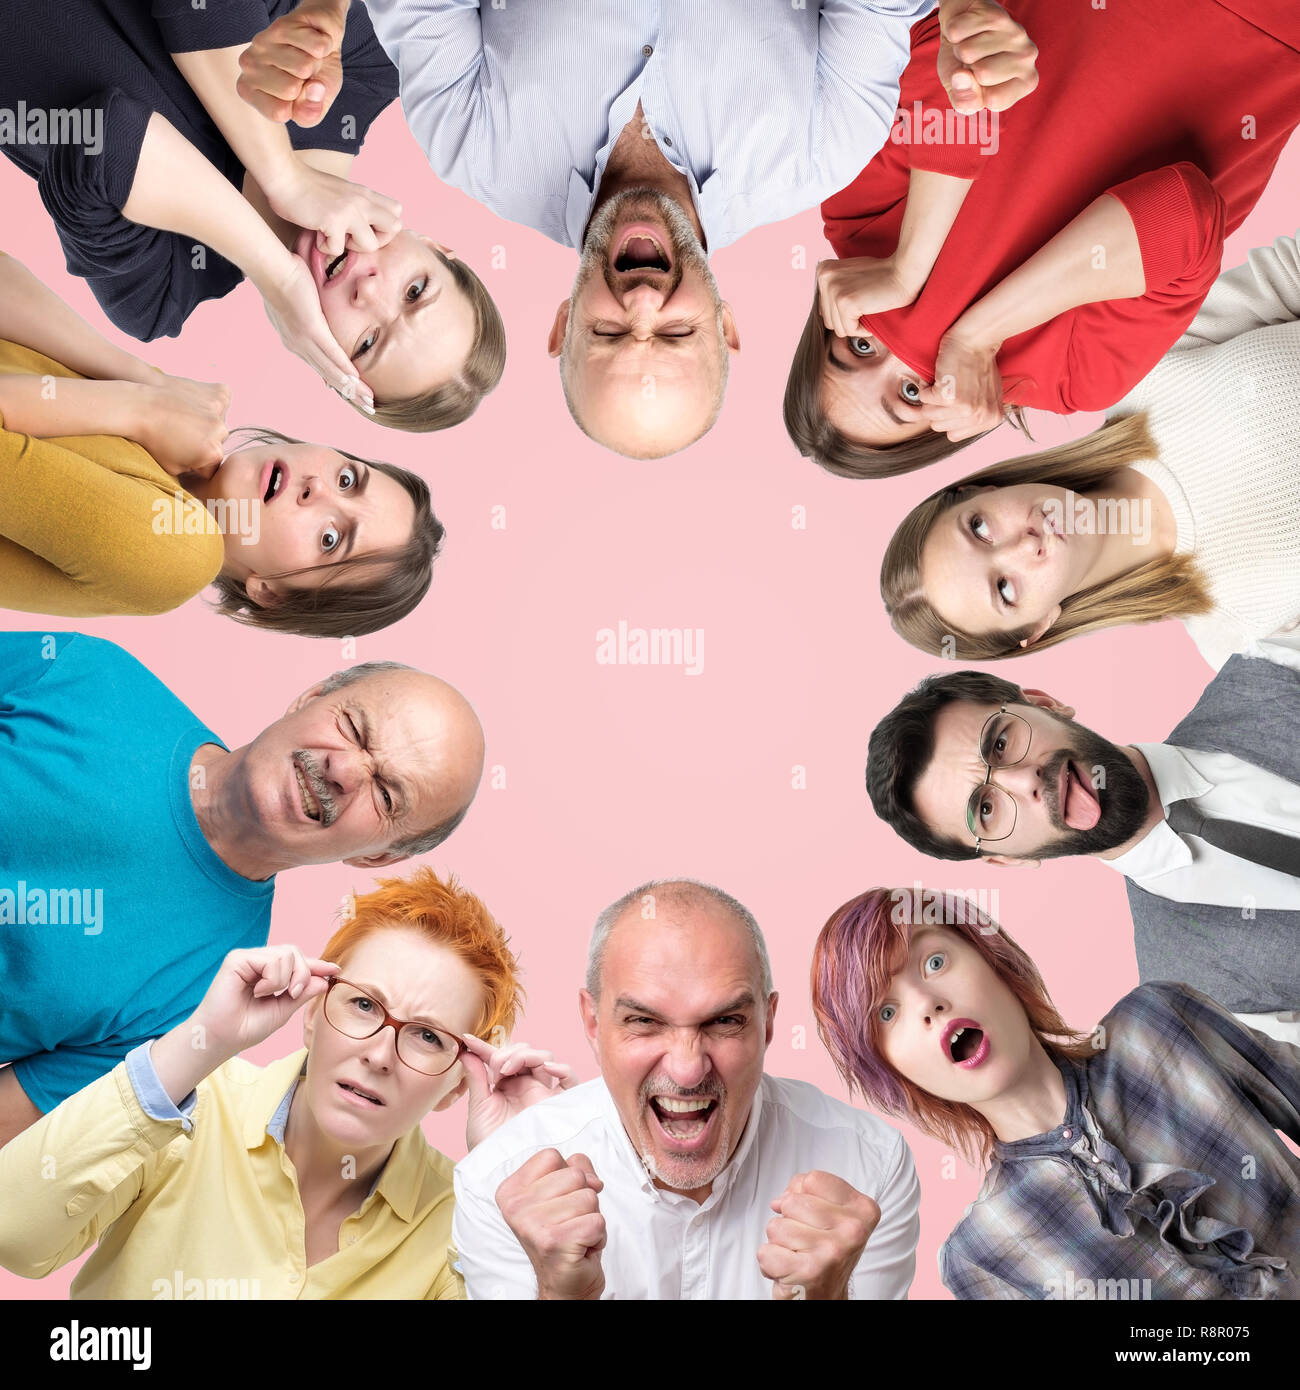 Circle collage of different men and women showing sad and negative emotions on pink background. - Stock Image